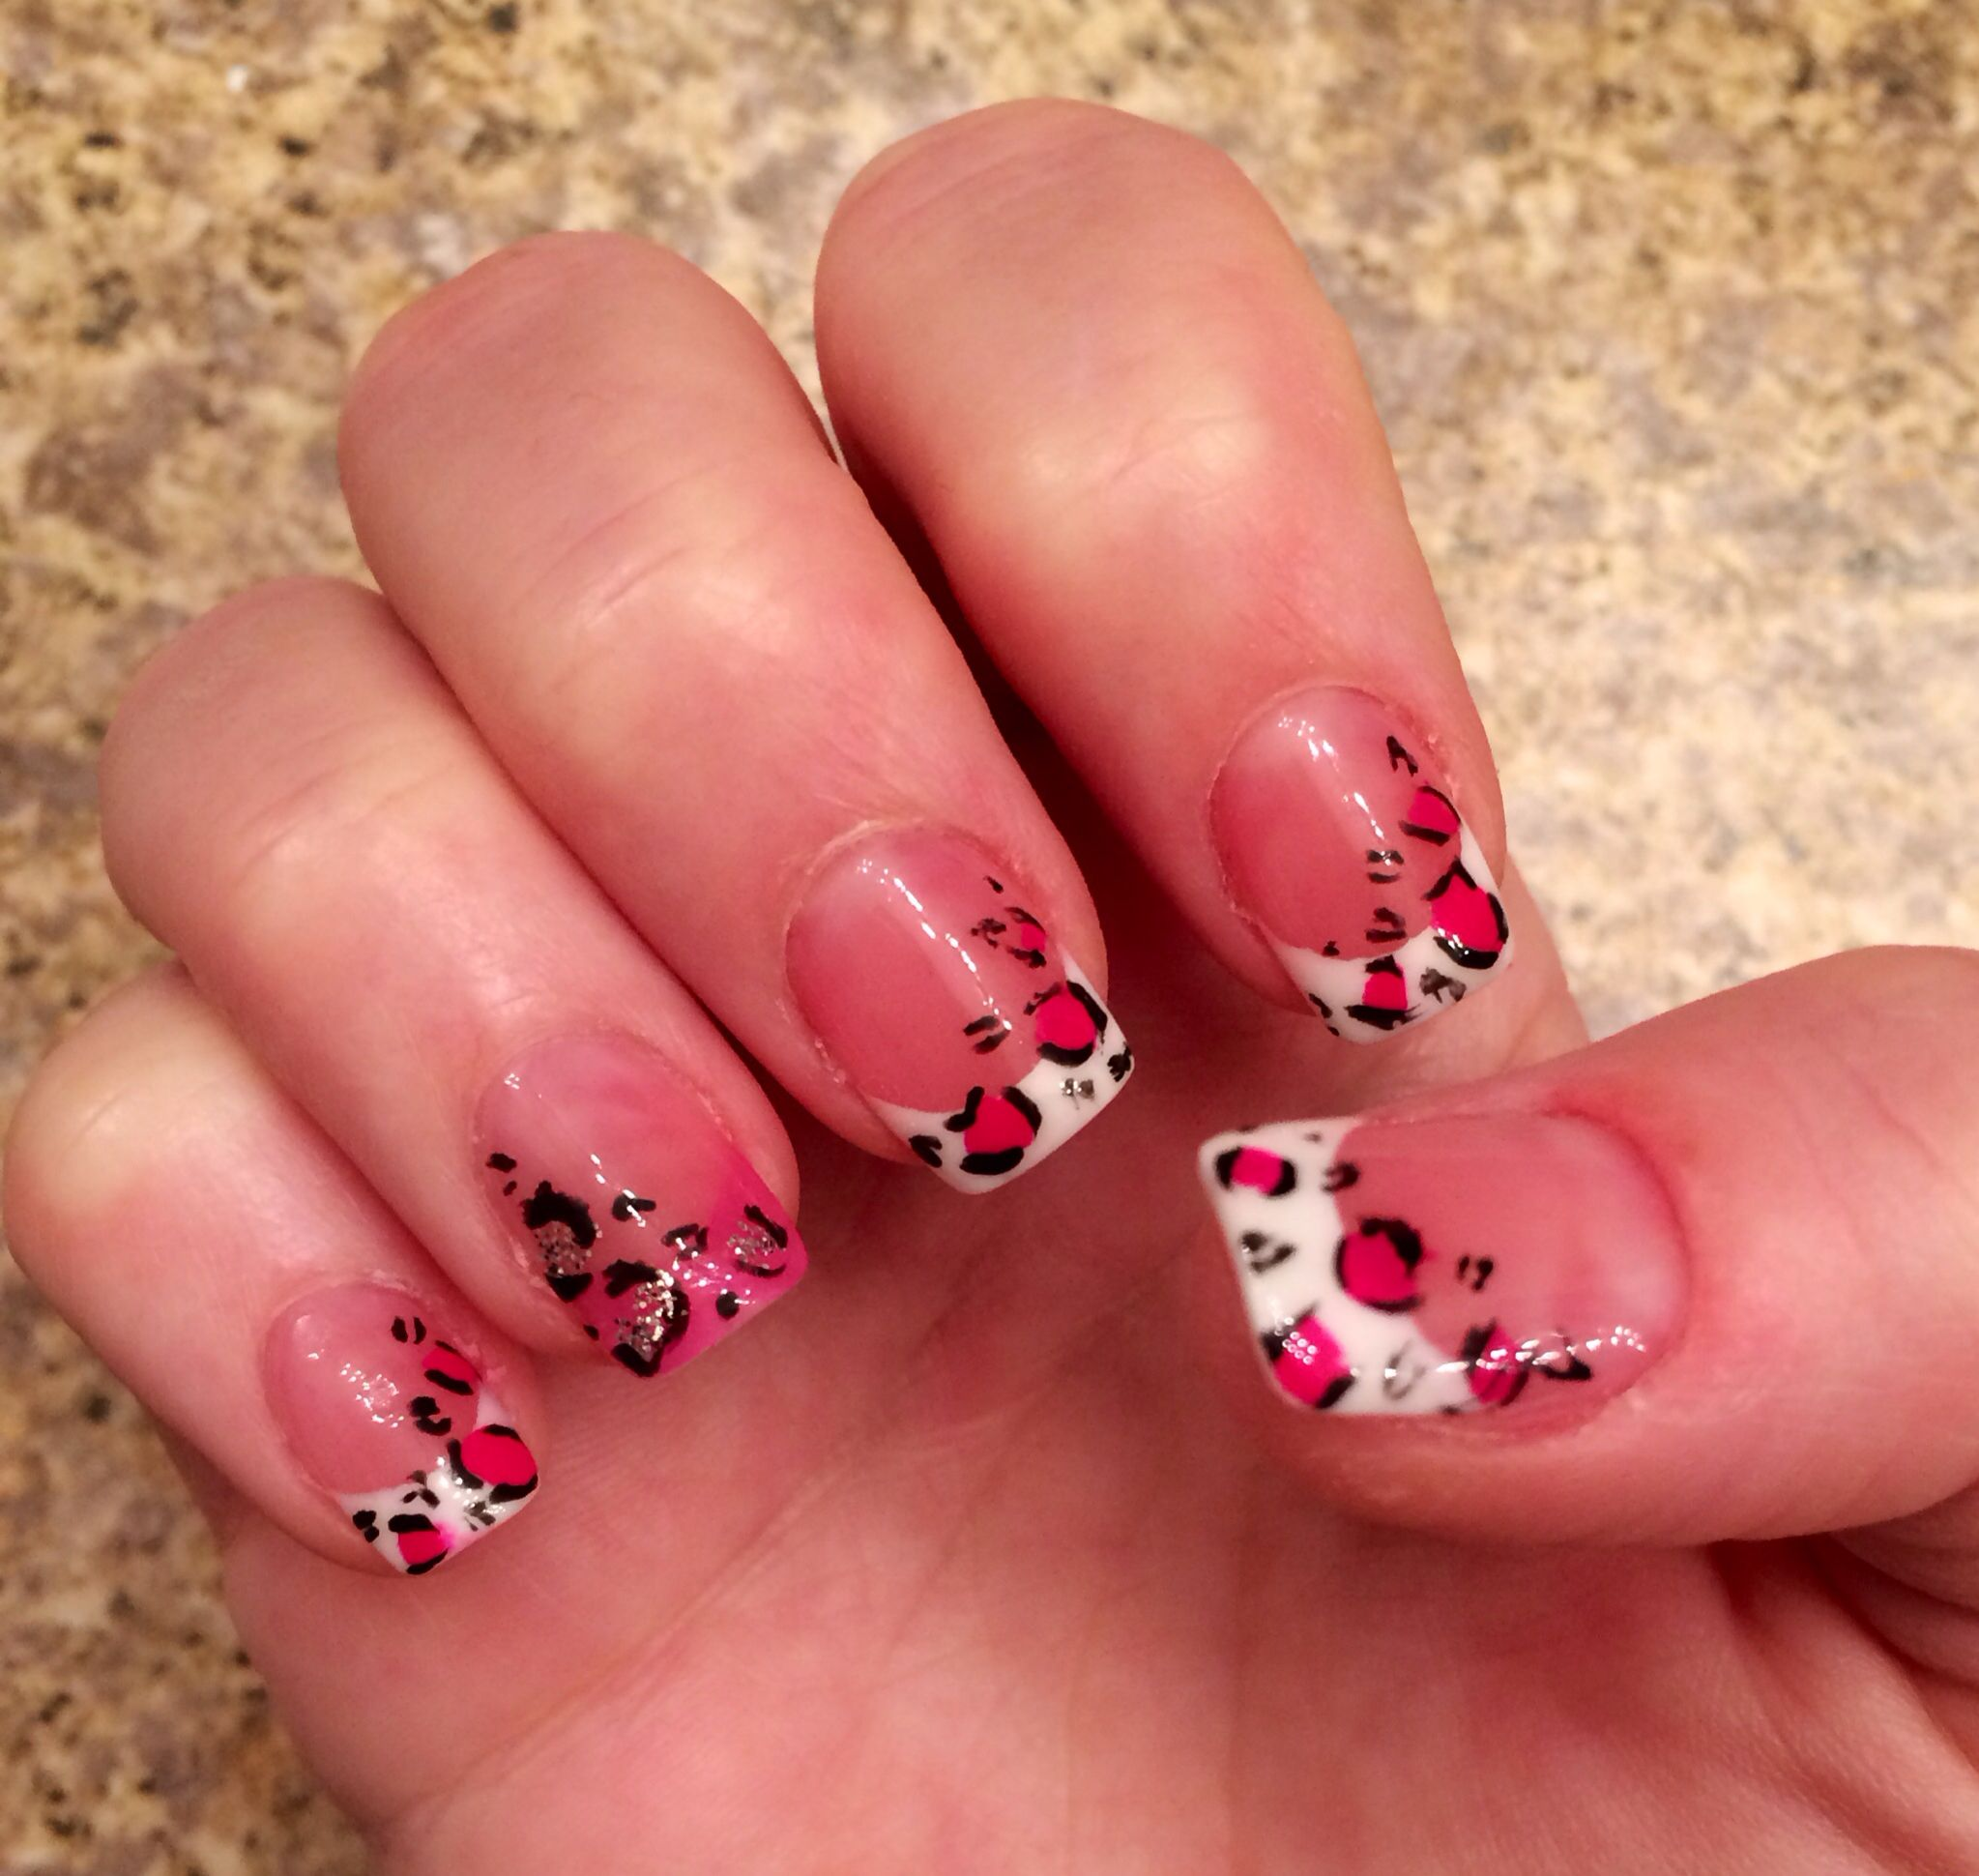 pink leopard french nails | nails | Pinterest